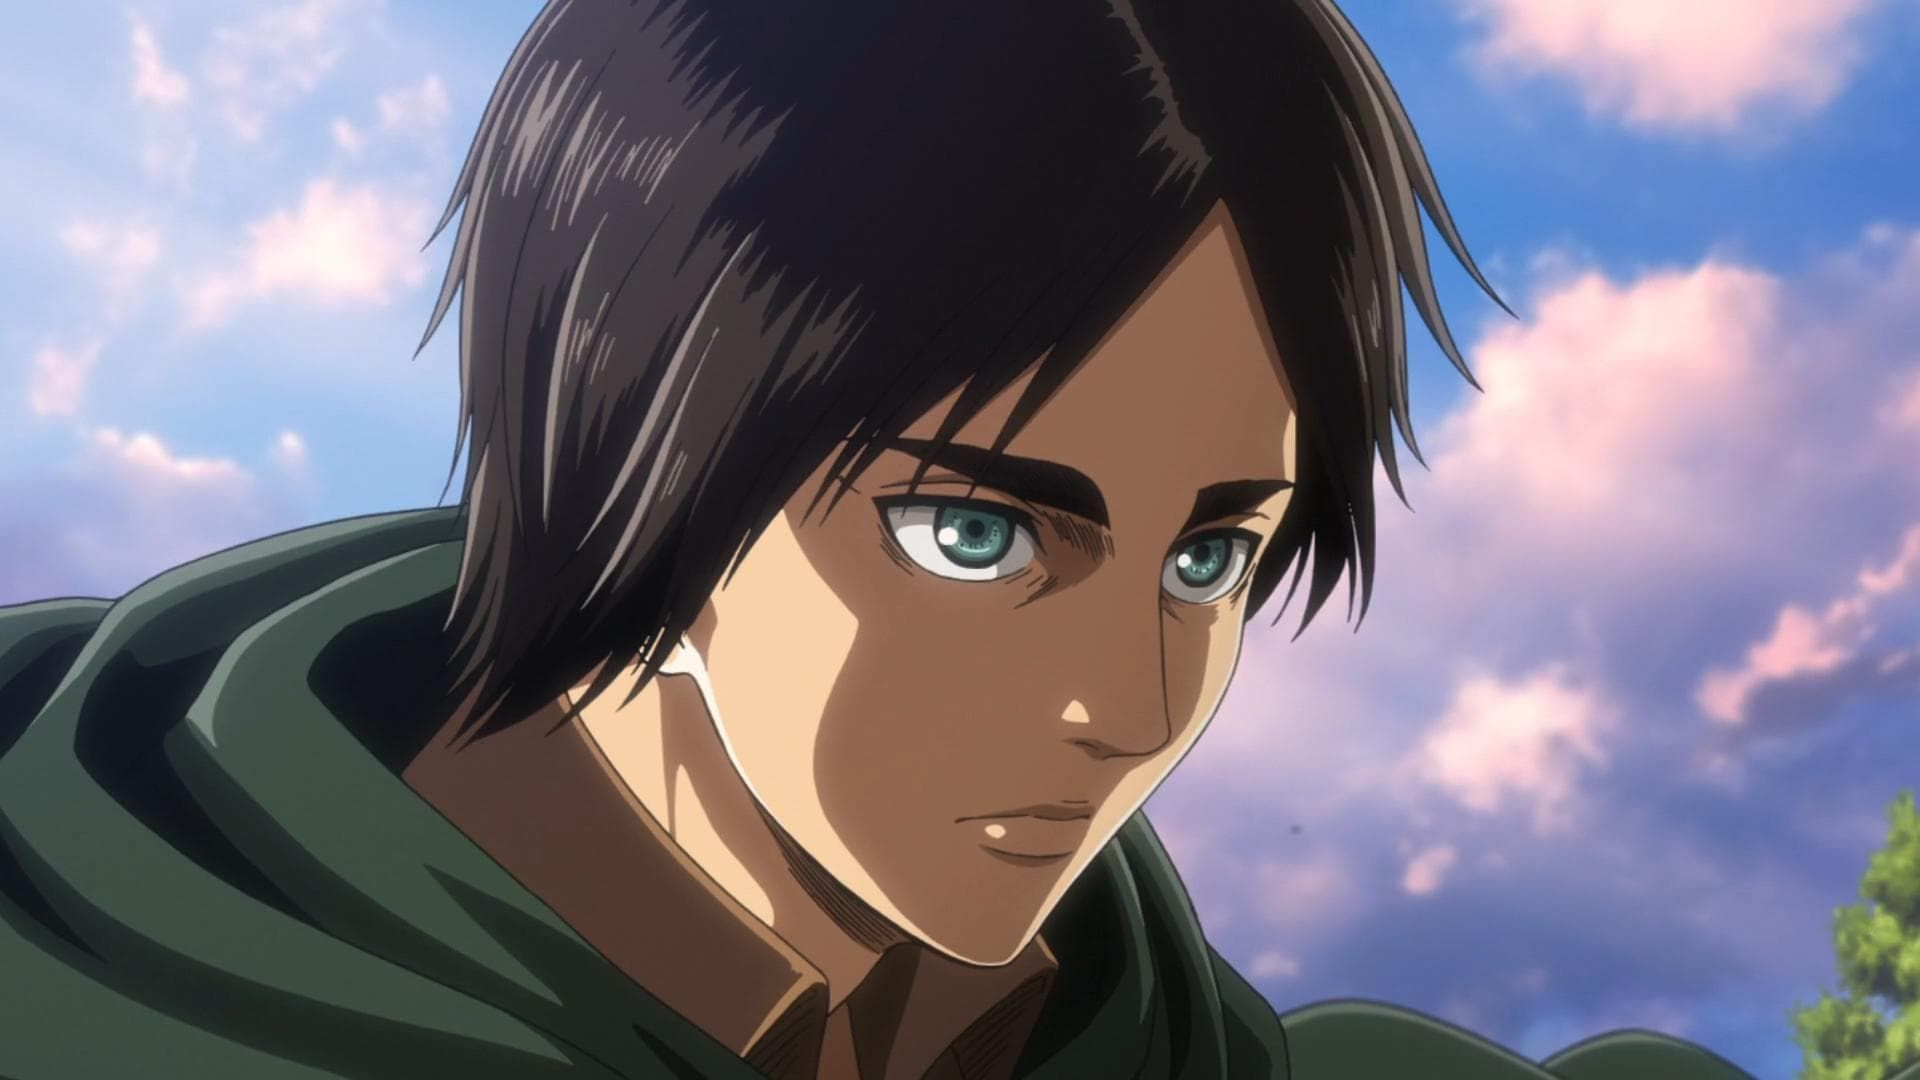 The Attack on Titan Finale Scene Shows The Growth Of Eren